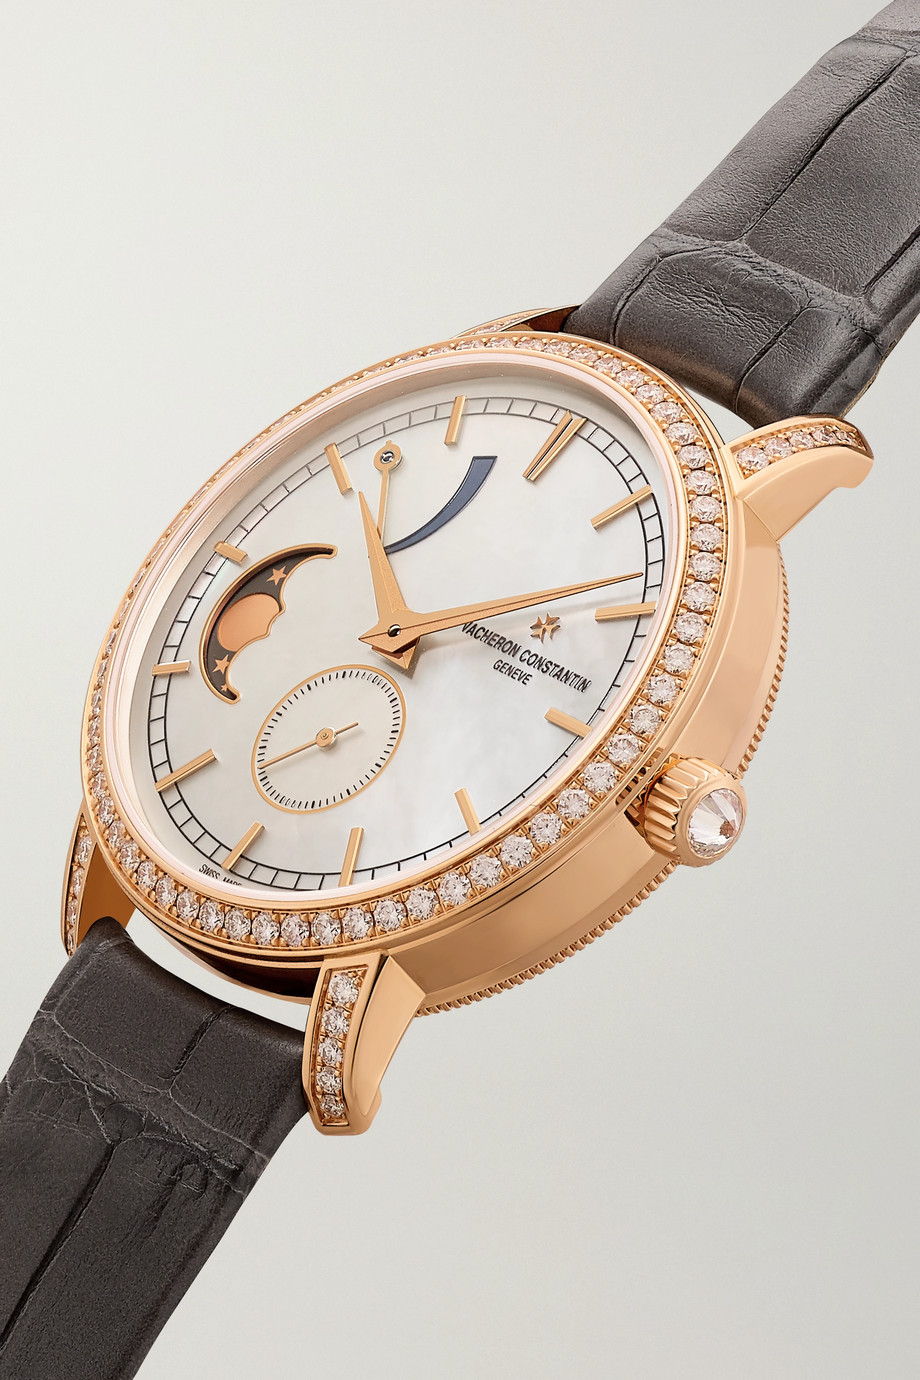 Vacheron Constantin Montre en or rose 18 carats, diamants et nacre à bracelet en alligator Traditionnelle 36 mm